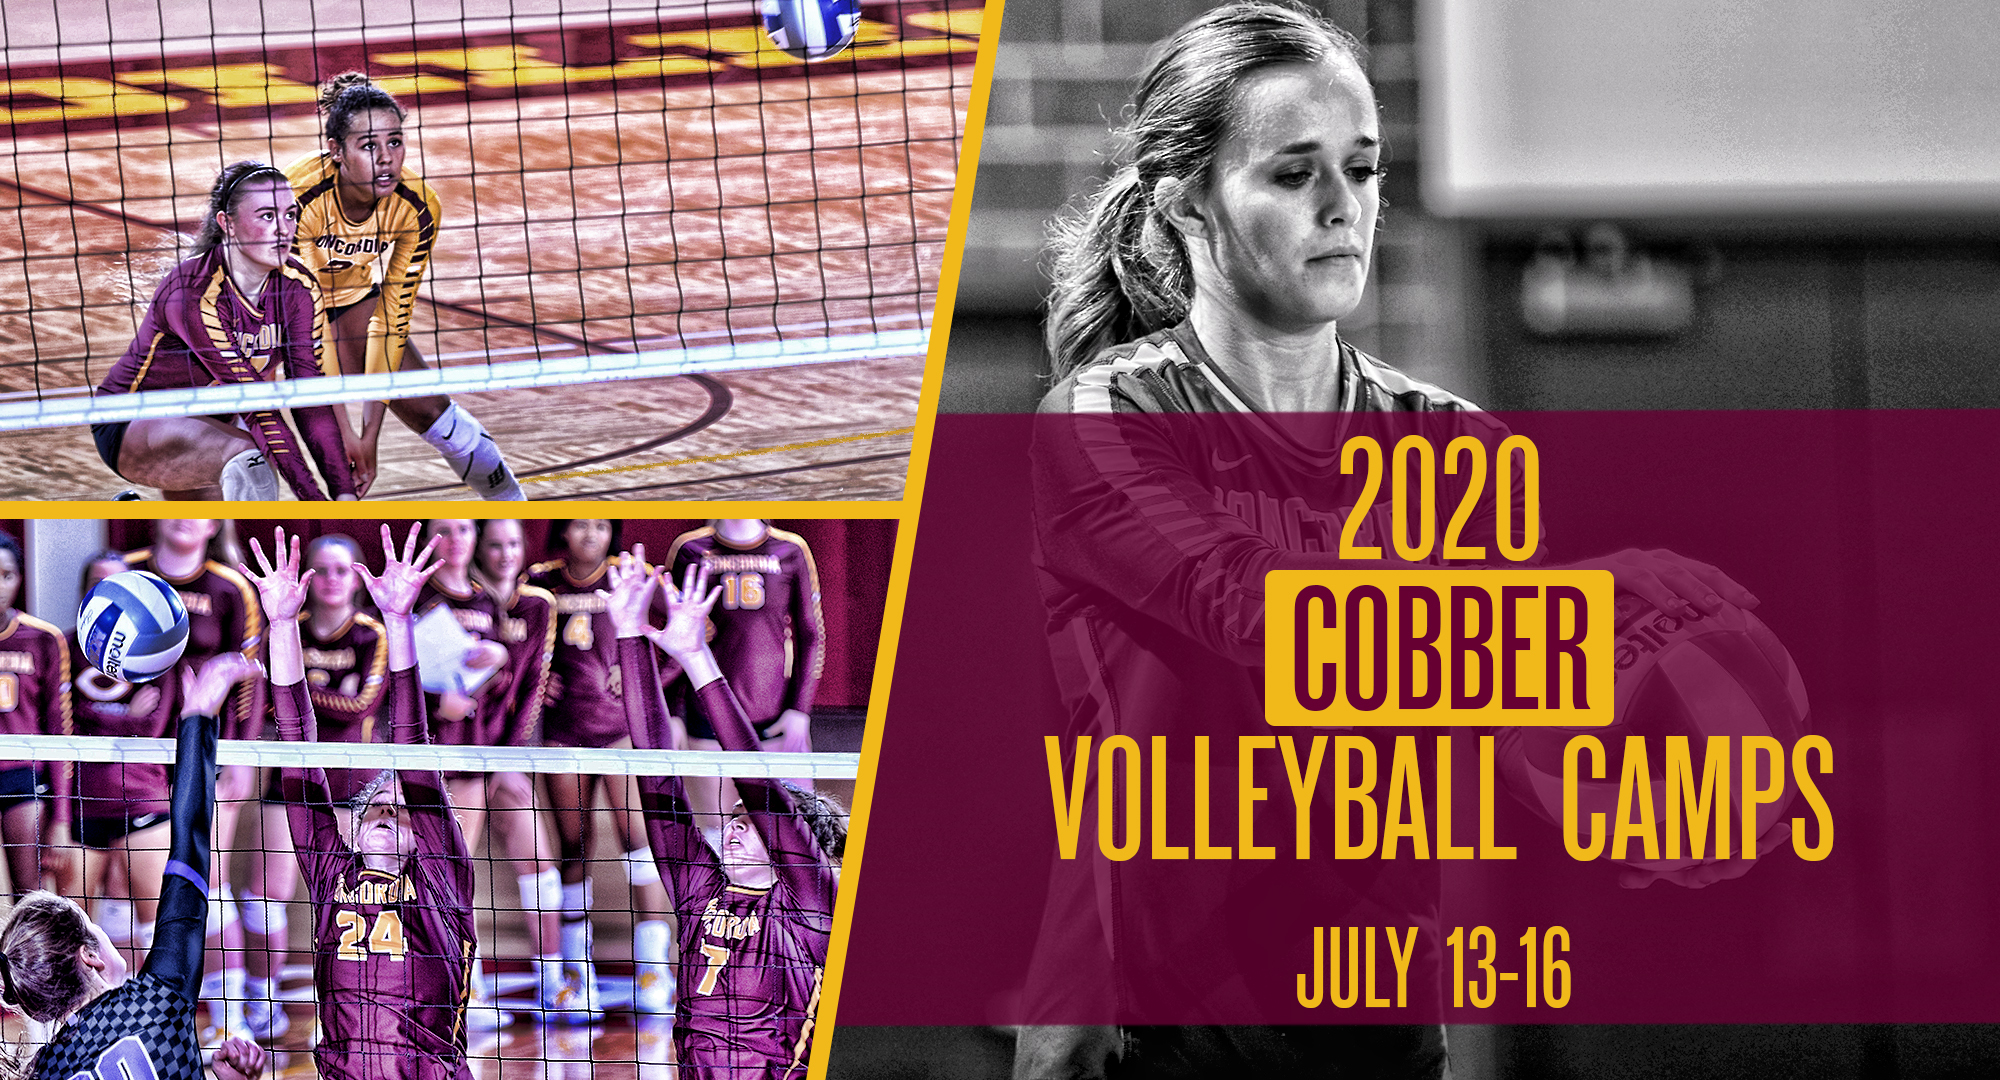 2020 Cobber Volleyball Camps